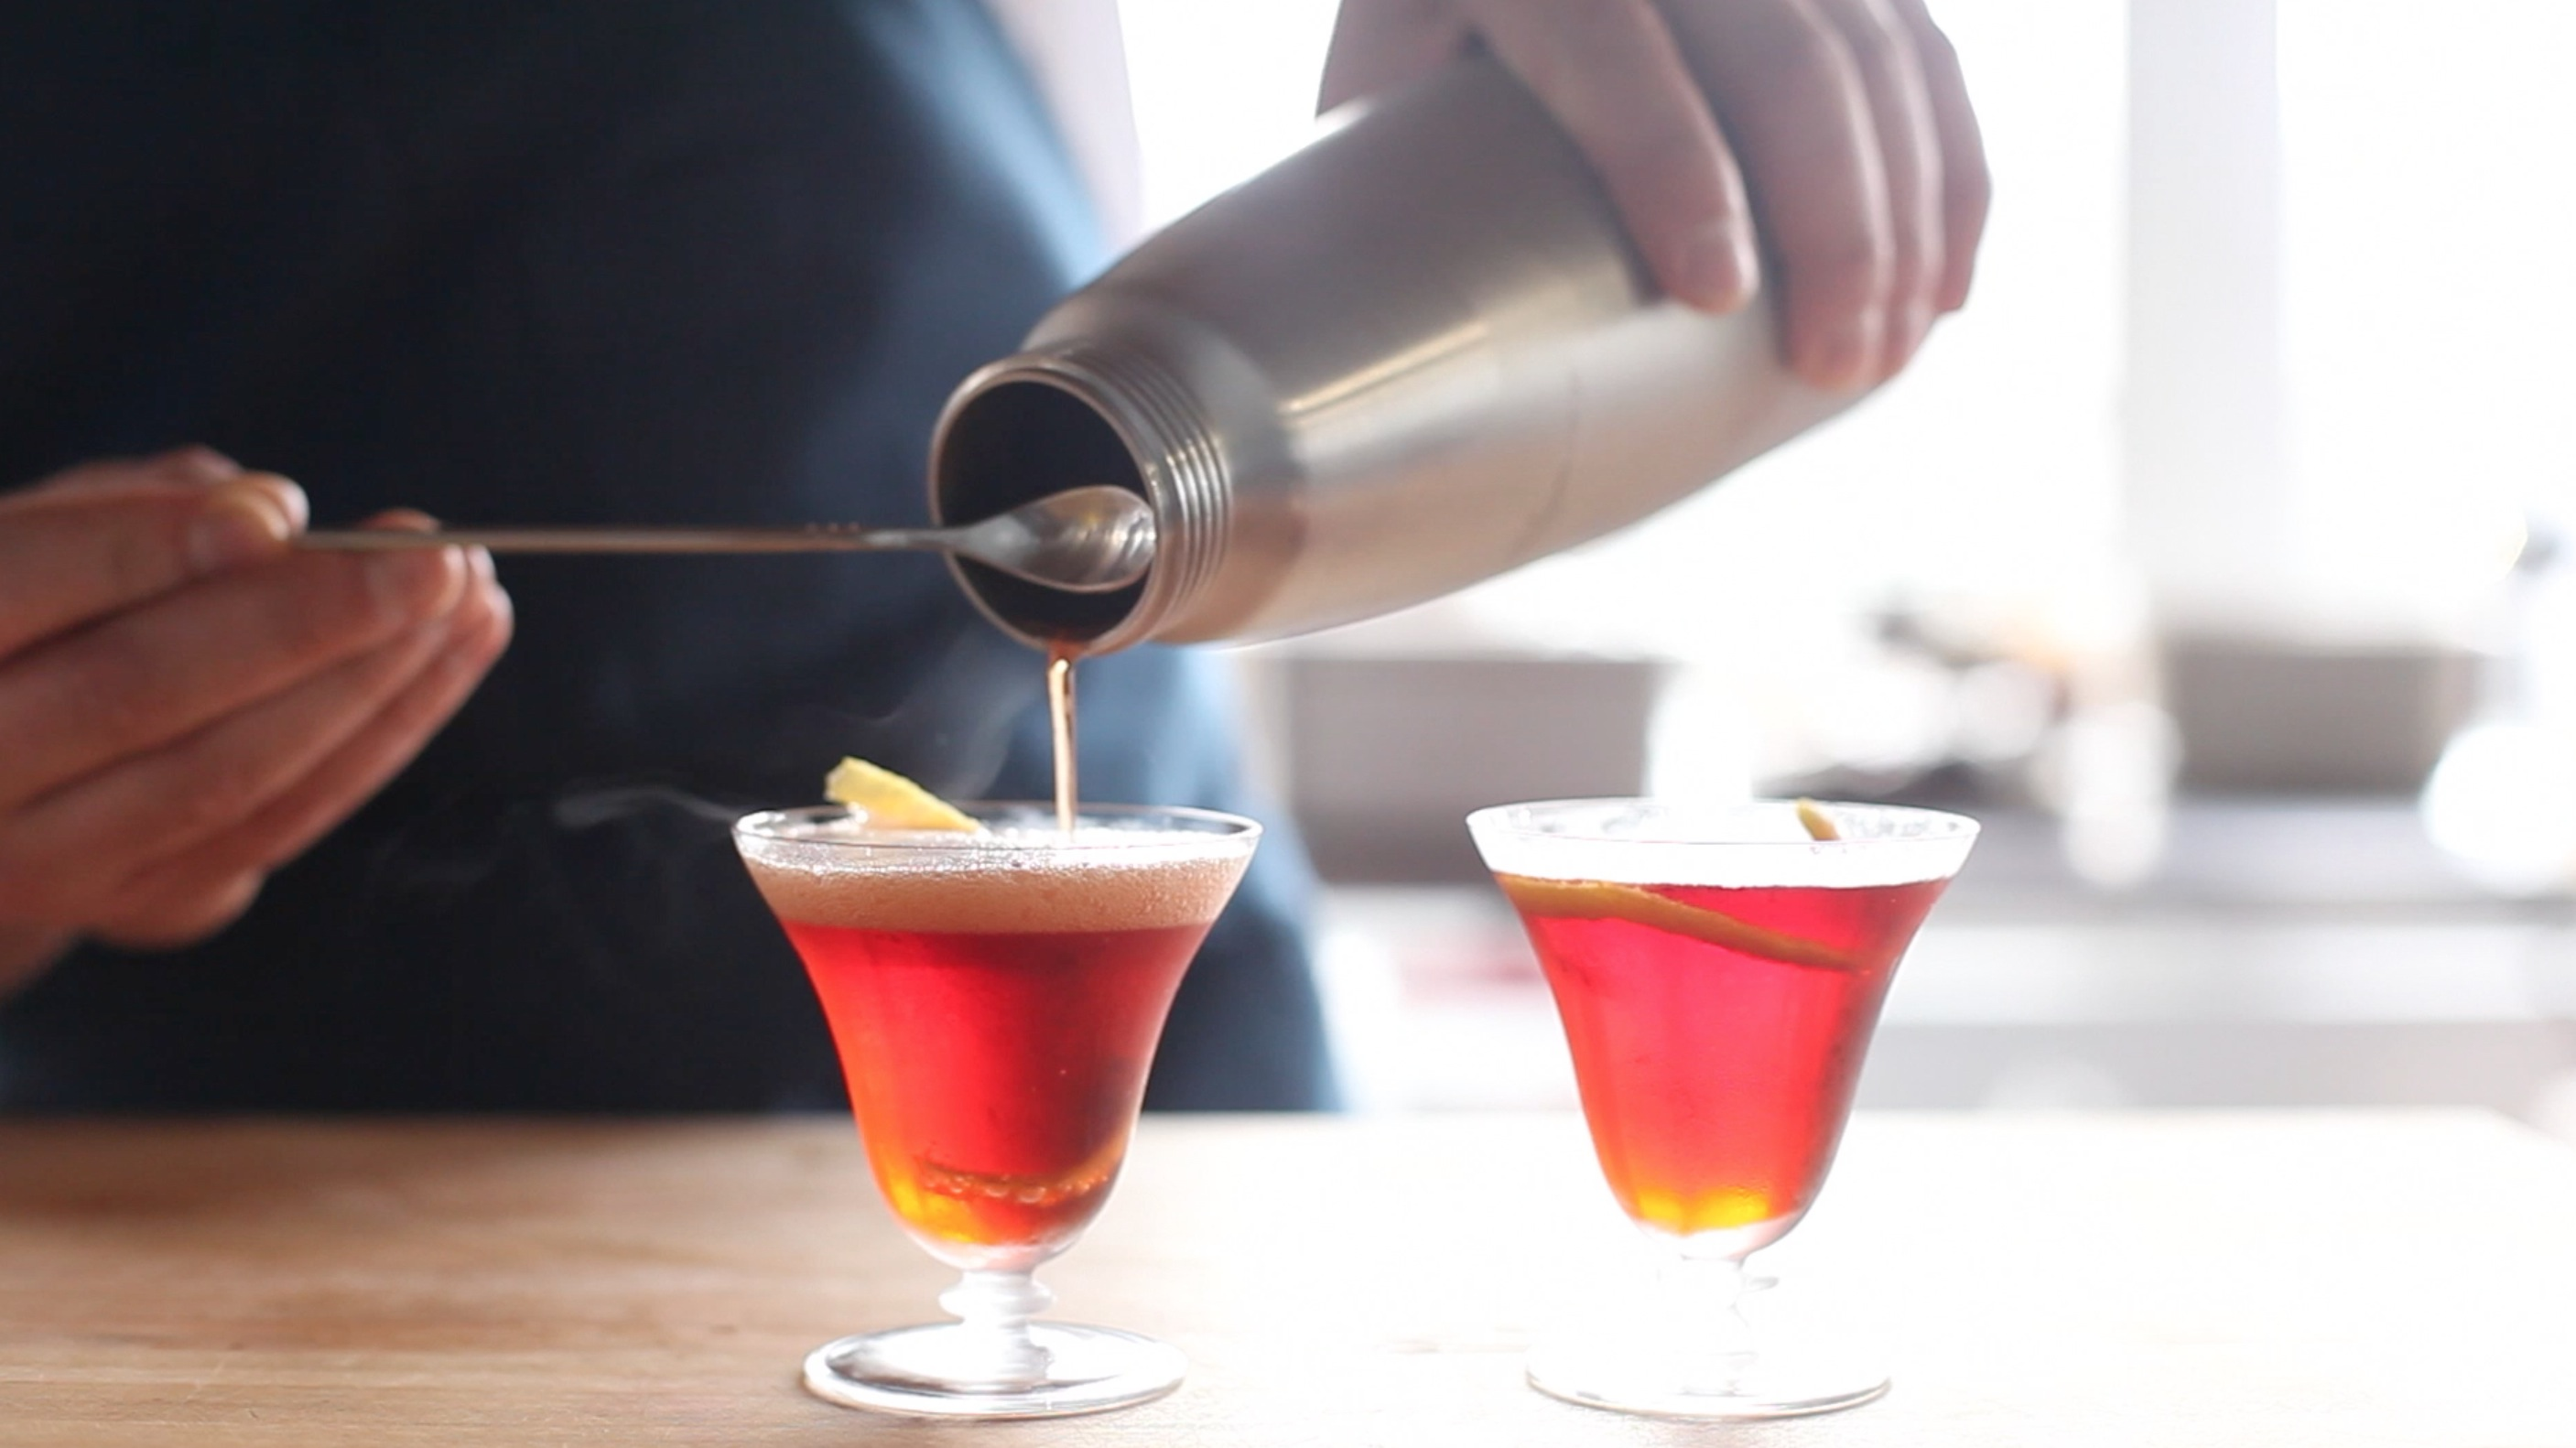 How to Make a Fizzy Negroni